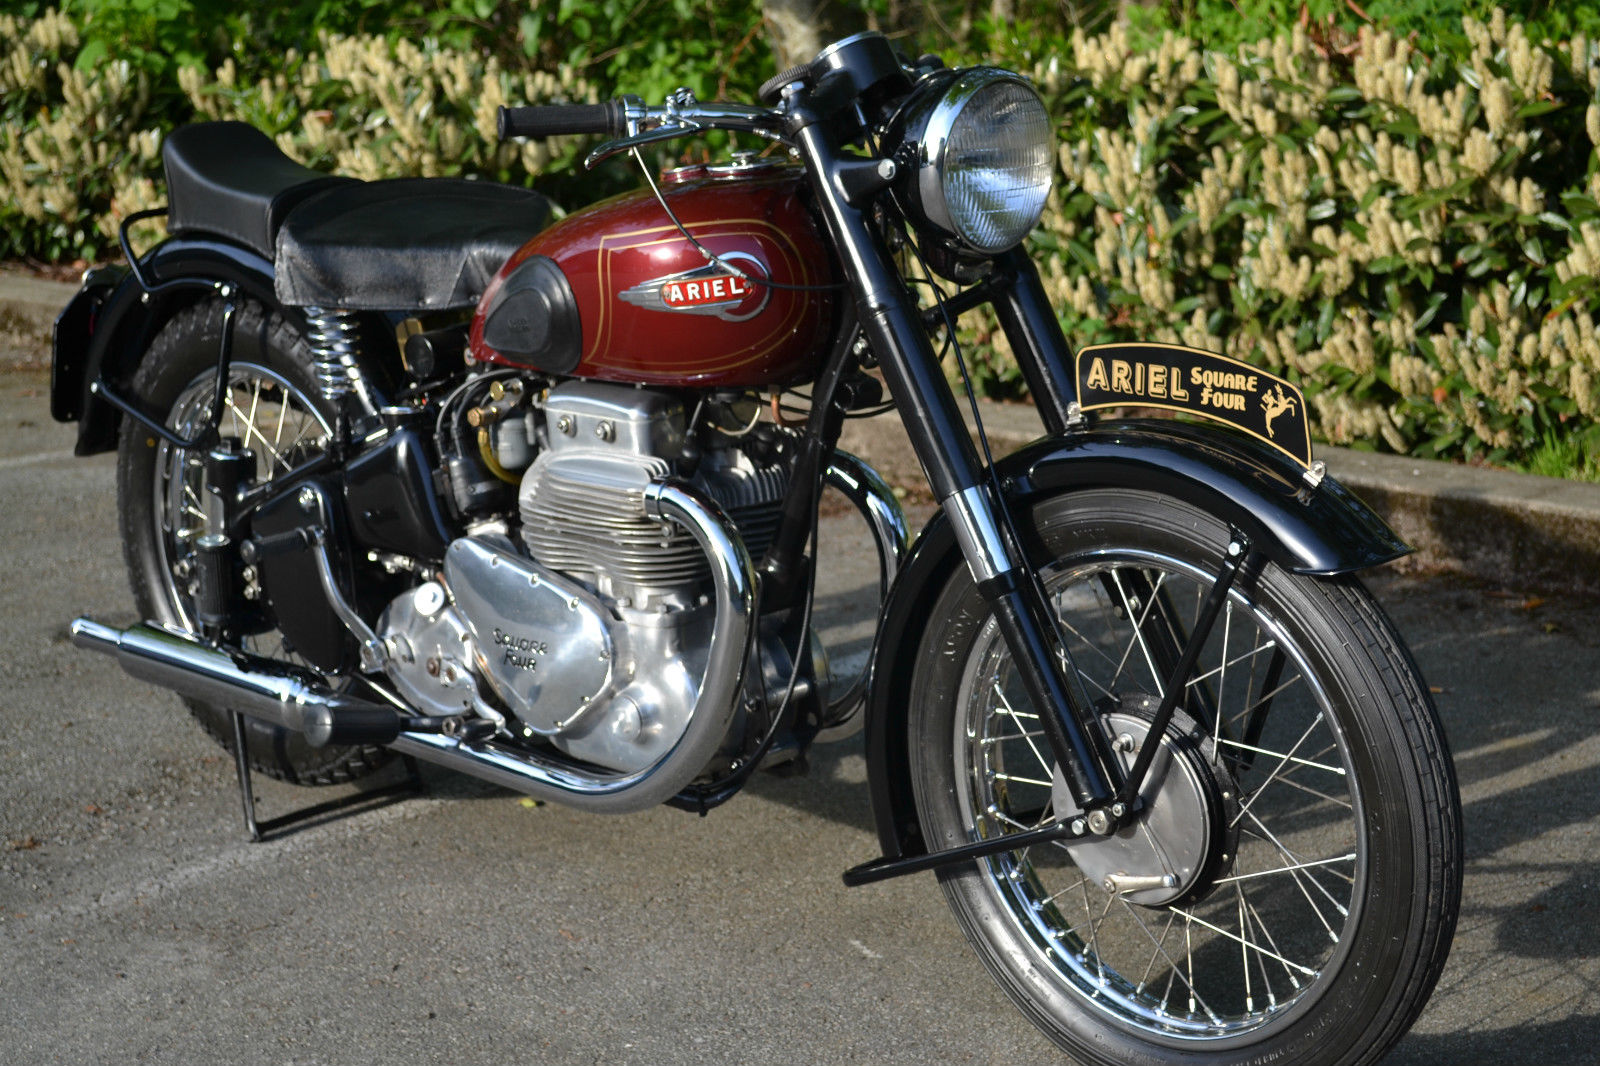 Ariel Square Four - 1952 - Cylinders, Square 4, Front Wheel Hub and Fender.